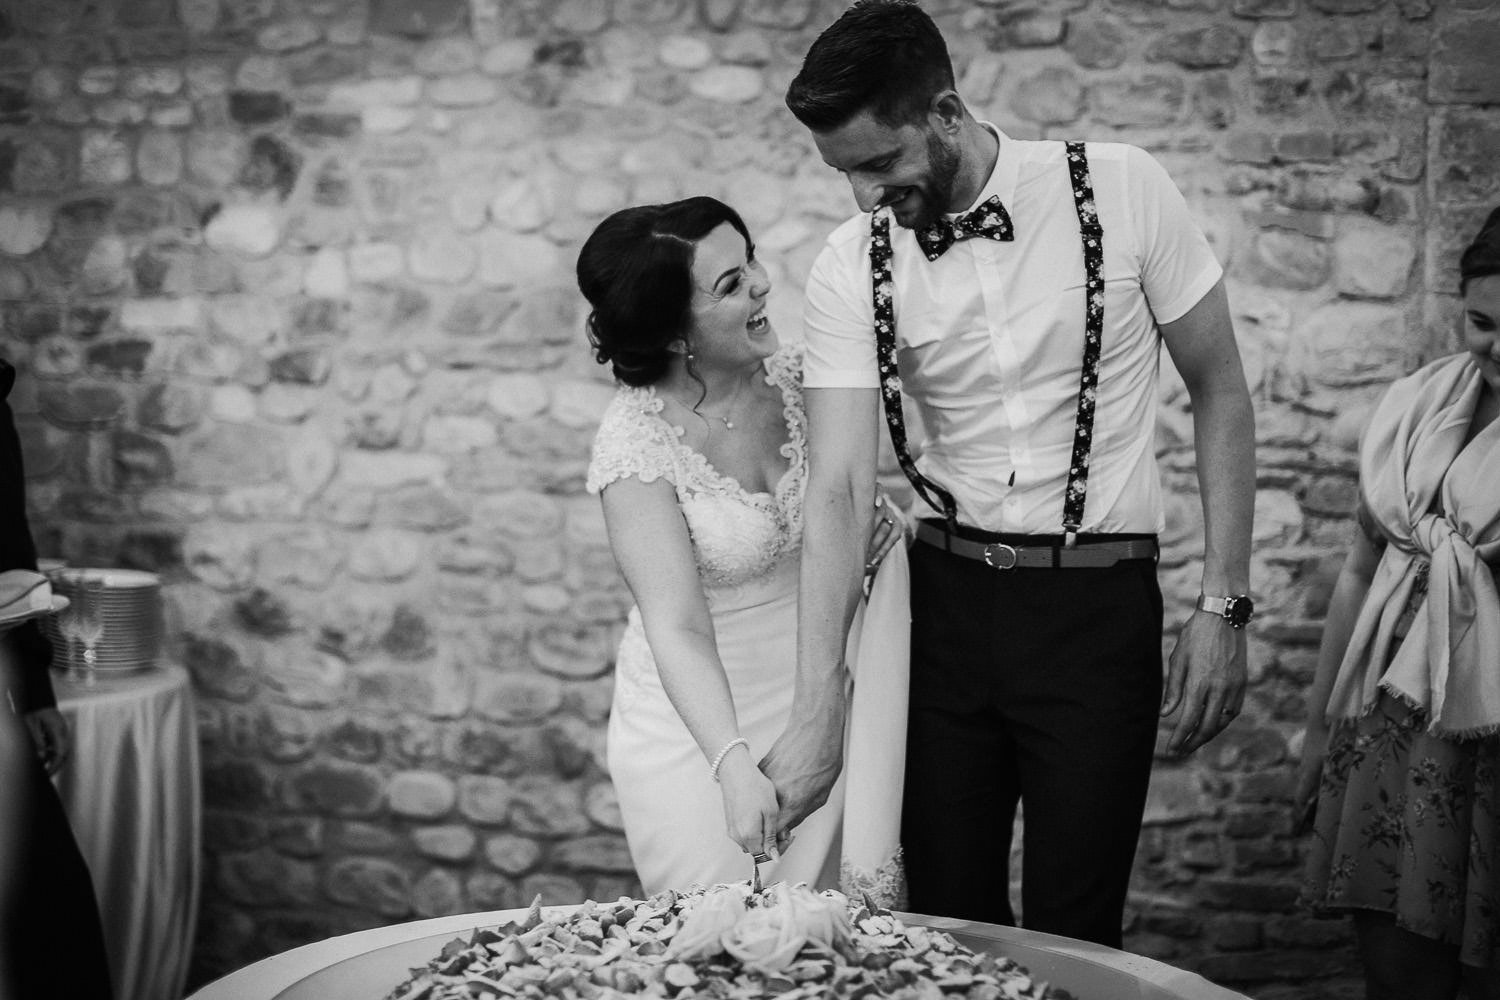 Bride and groom cutting cack Castello di bibbione wedding photography Tuscany